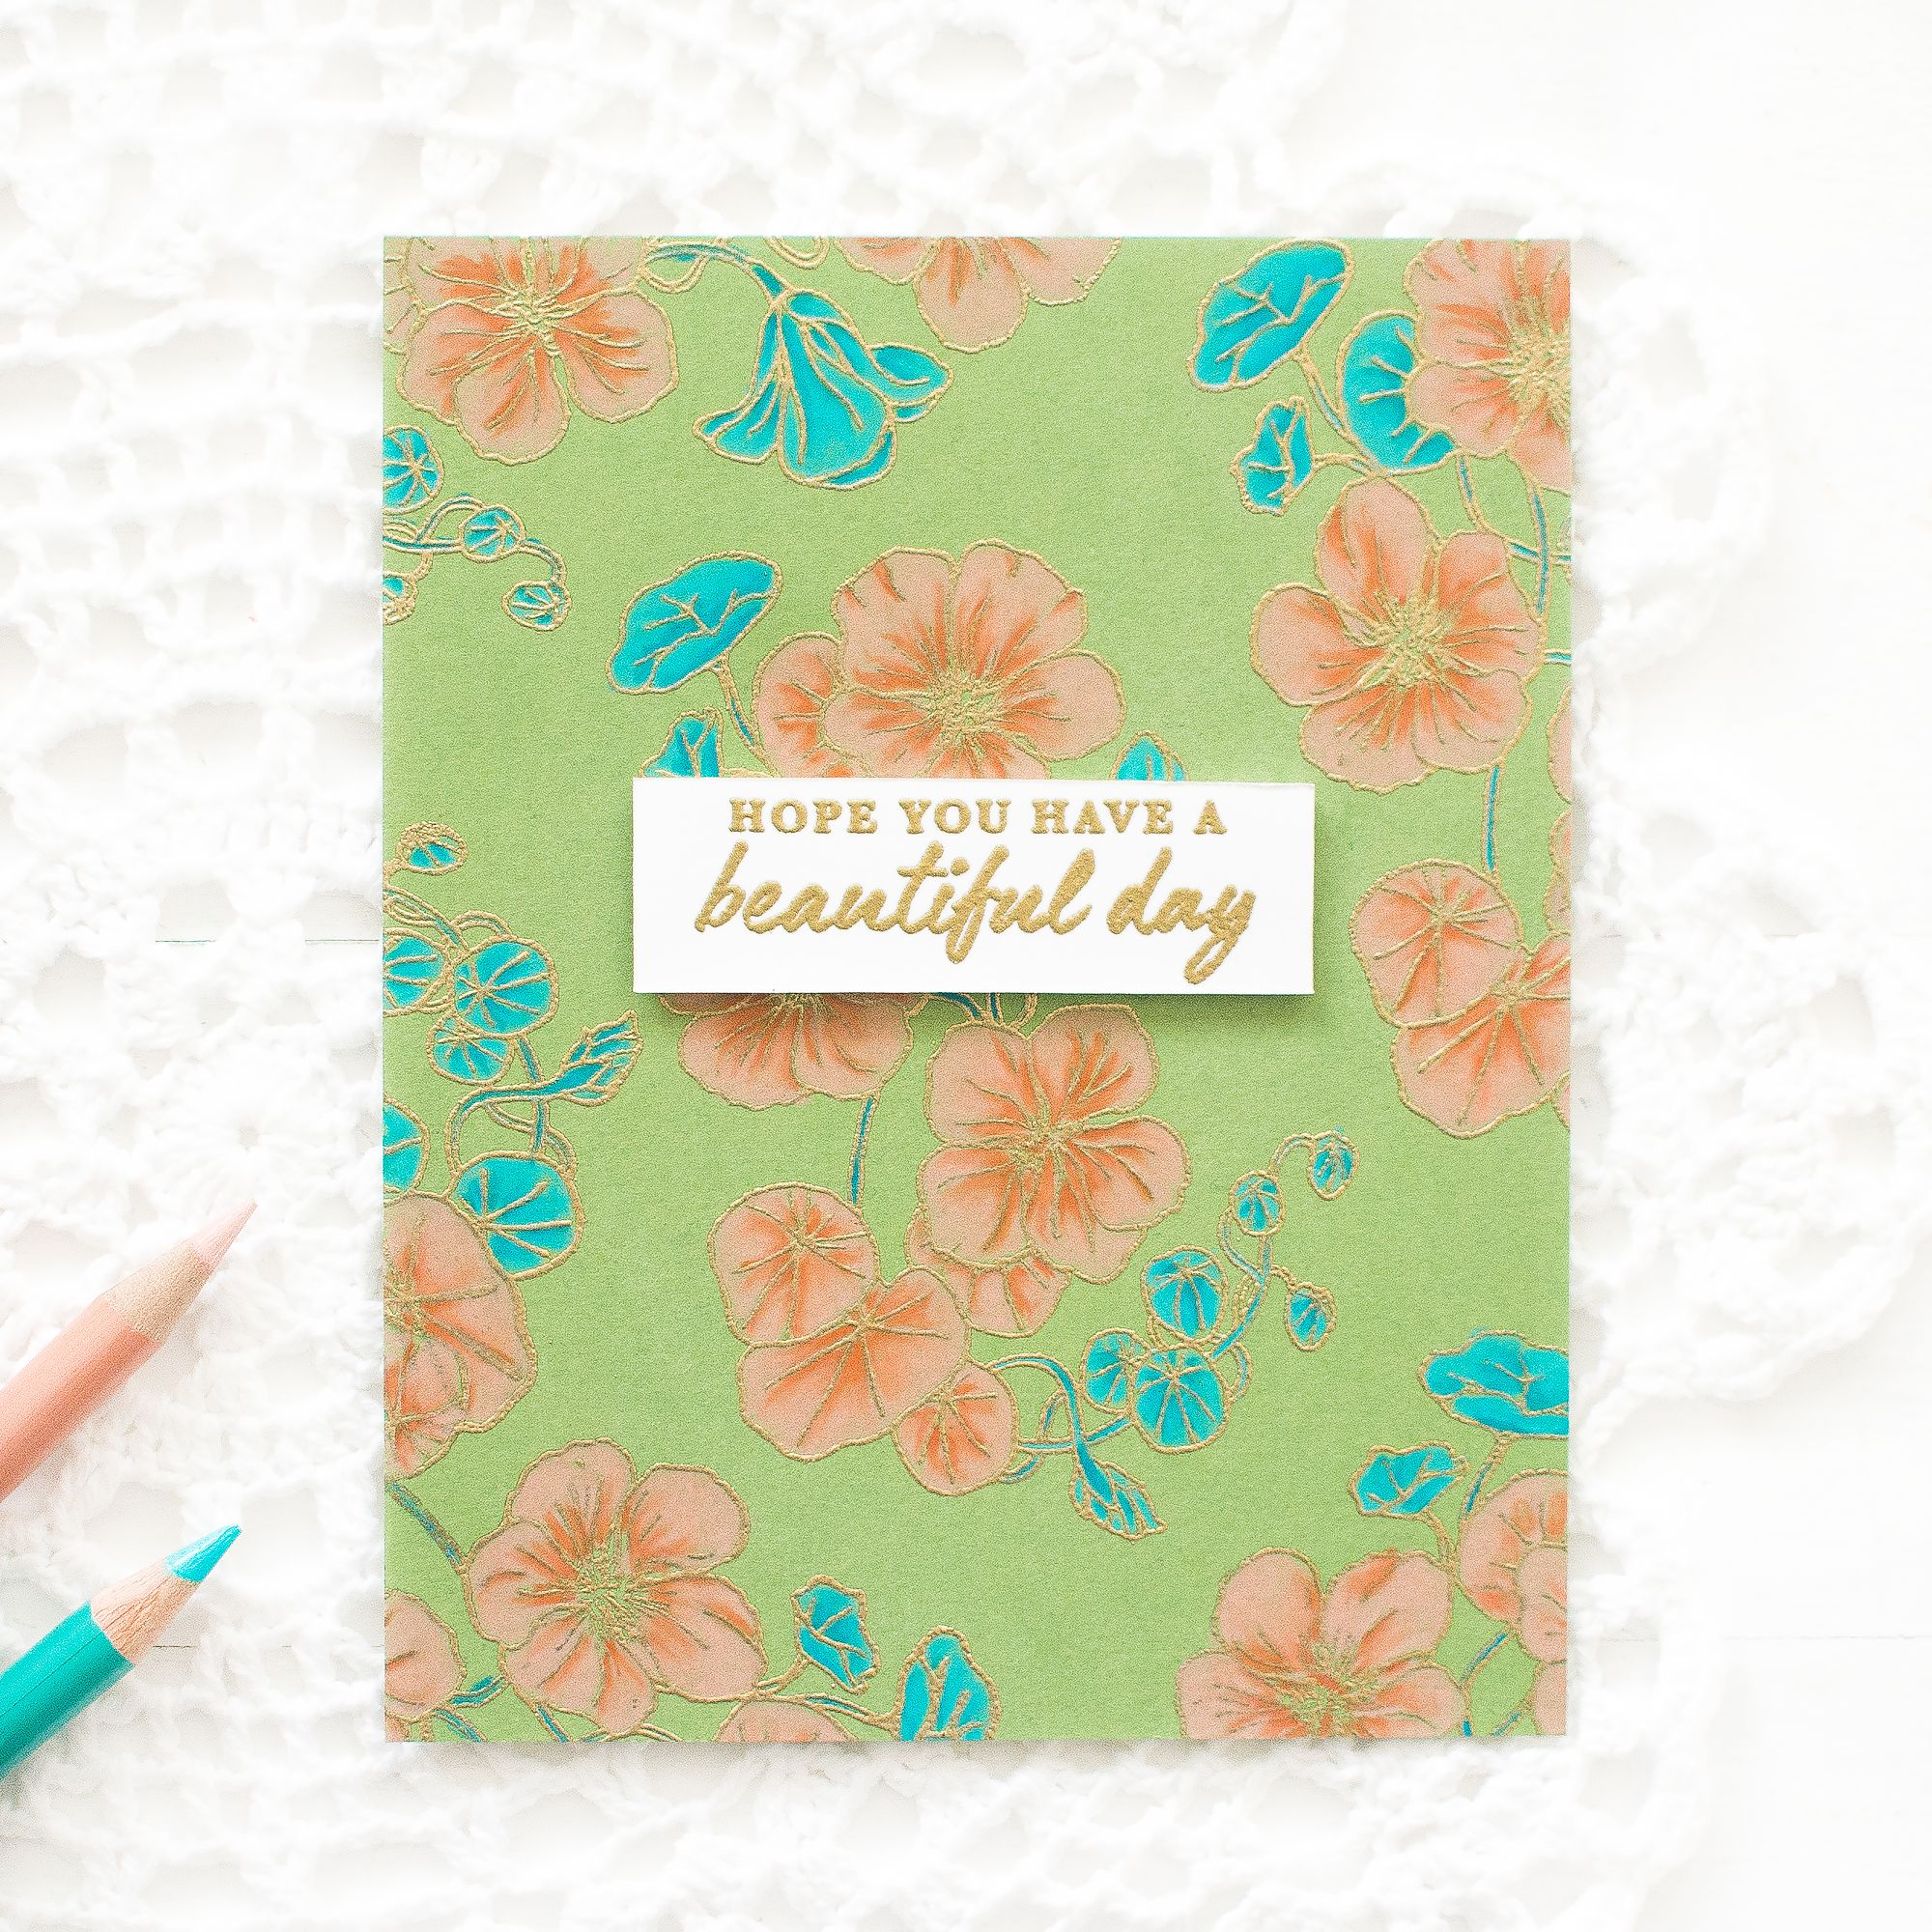 Hi Crafty Friends Hero Arts Released 2018 Spring Catalog